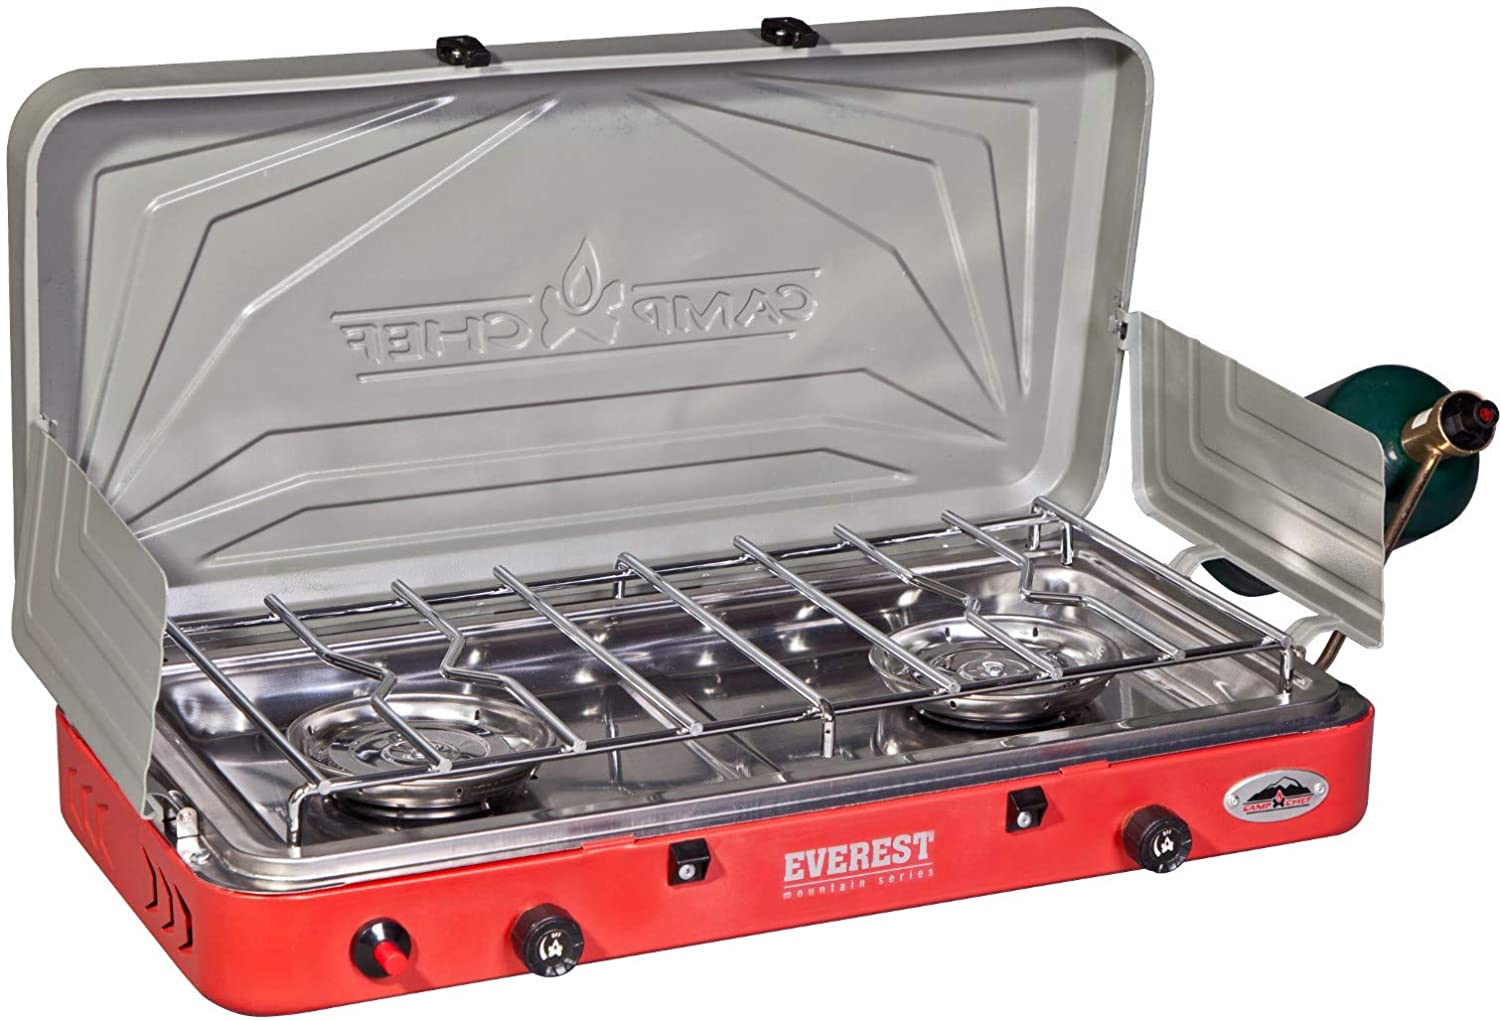 Camp Chef Everest Double Burner Stove